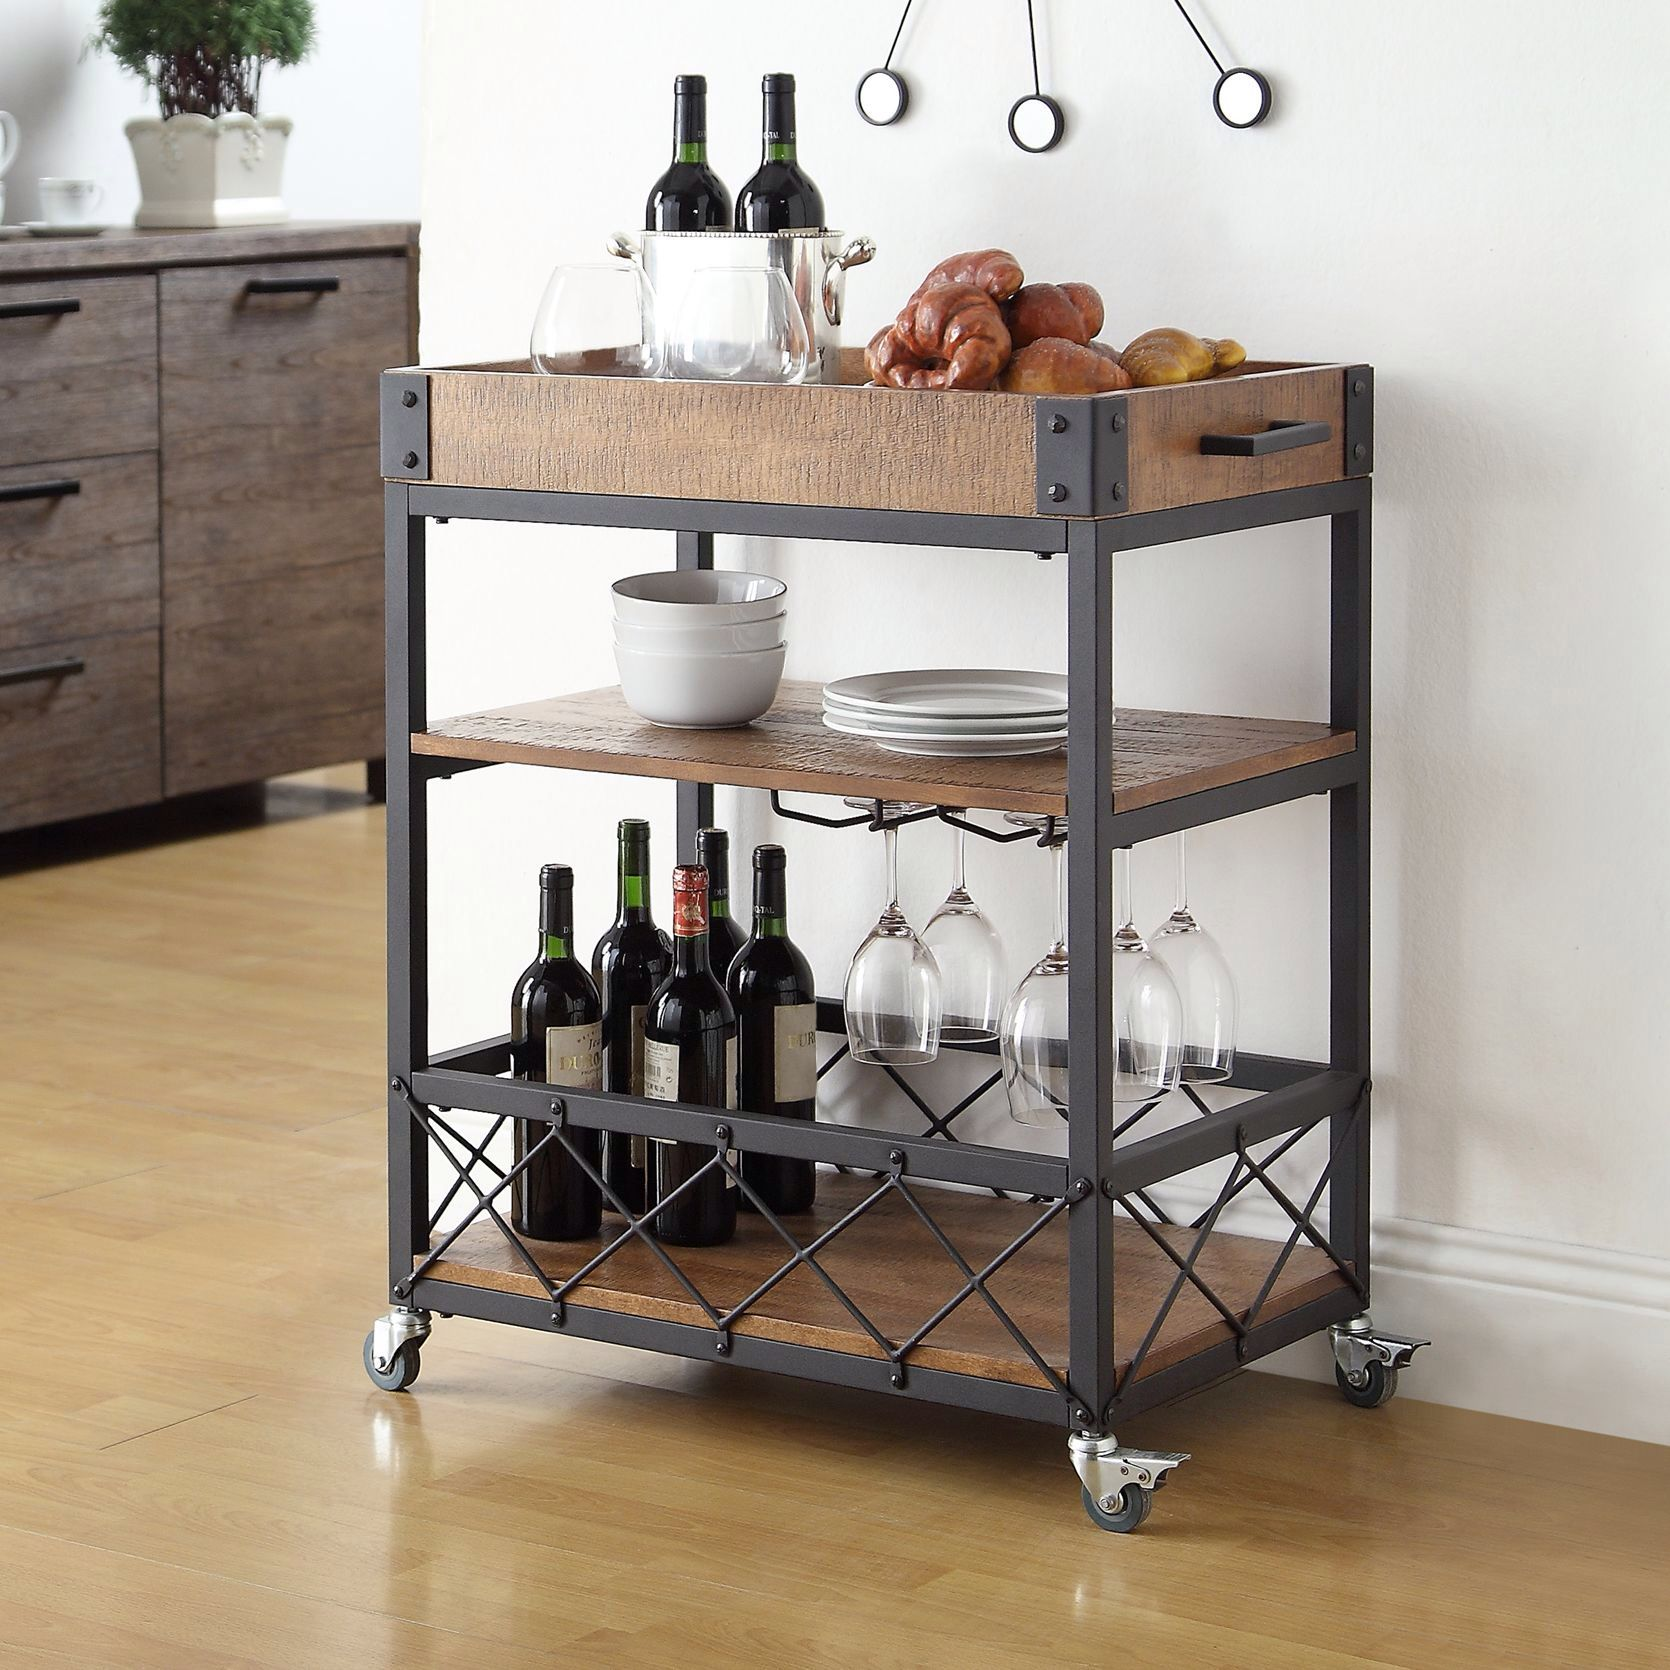 Kitchen cart metal - Myra Rustic Mobile Kitchen Bar Serving Cart Wood And Metal Rolling Serving Cart You Can Get More Details By Clicking On The Image